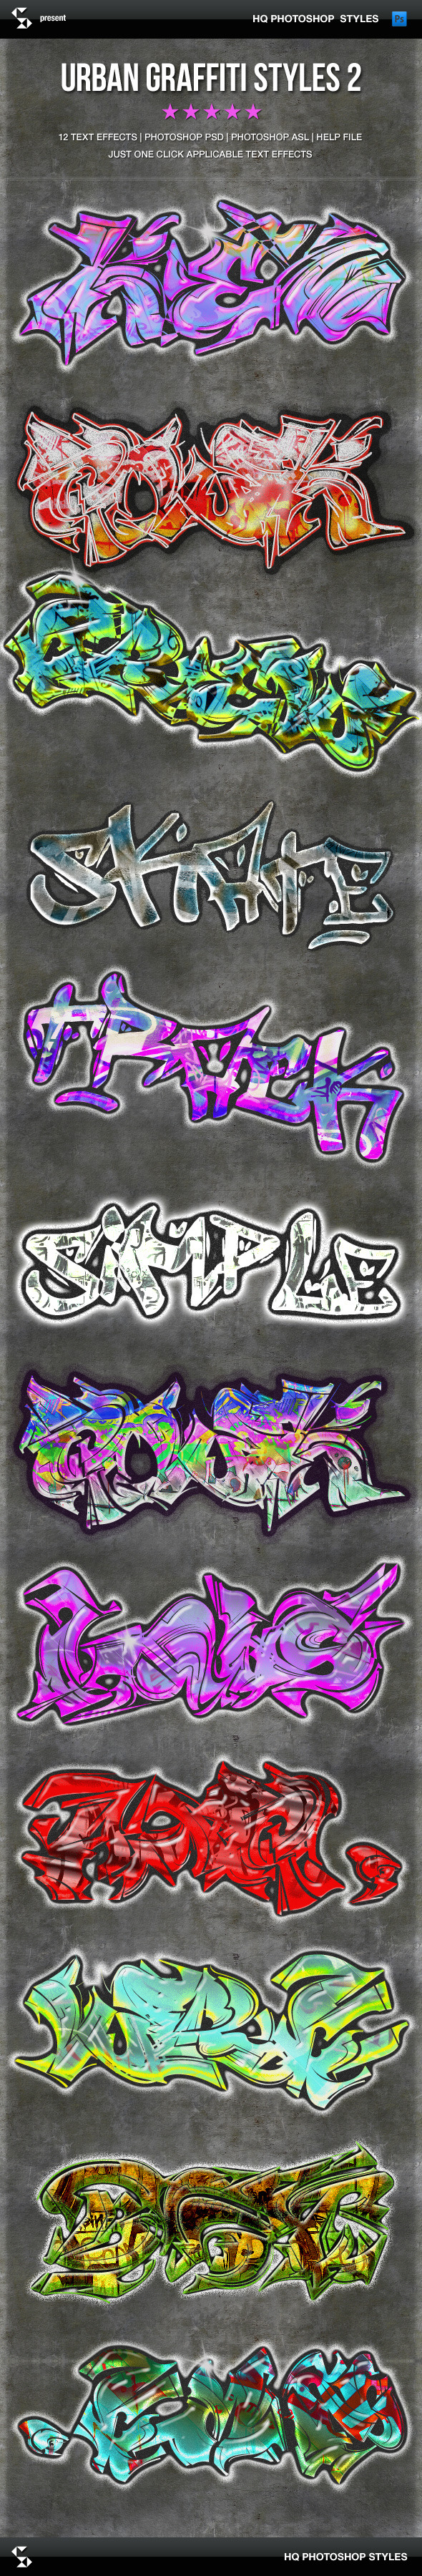 Urban Graffiti Text Effects 2 - Text Effects Styles